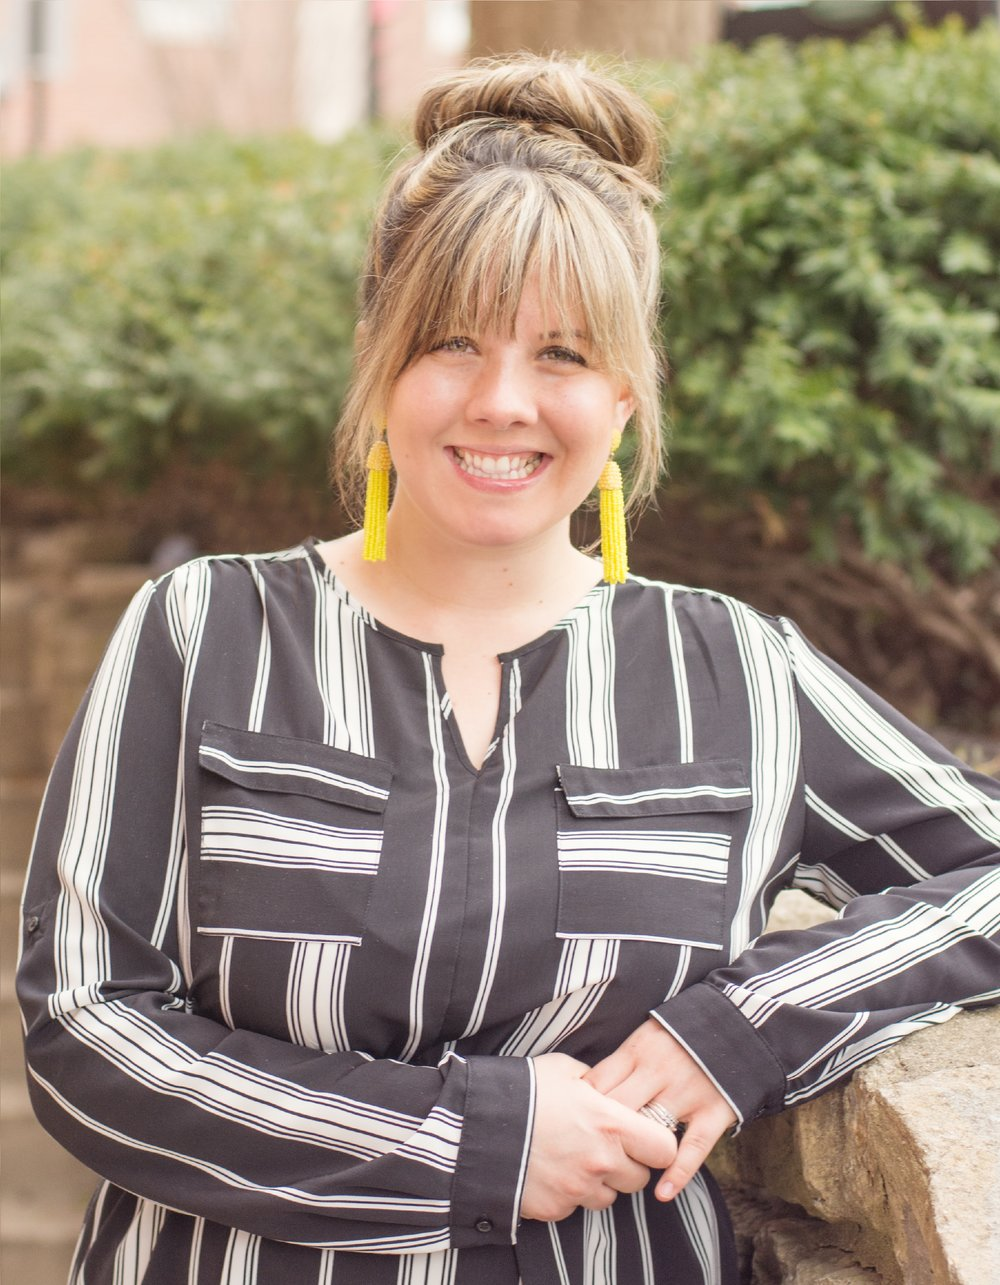 Kacey Widmeyer, M.S., Certified Lactation Counselor & Labor Doula